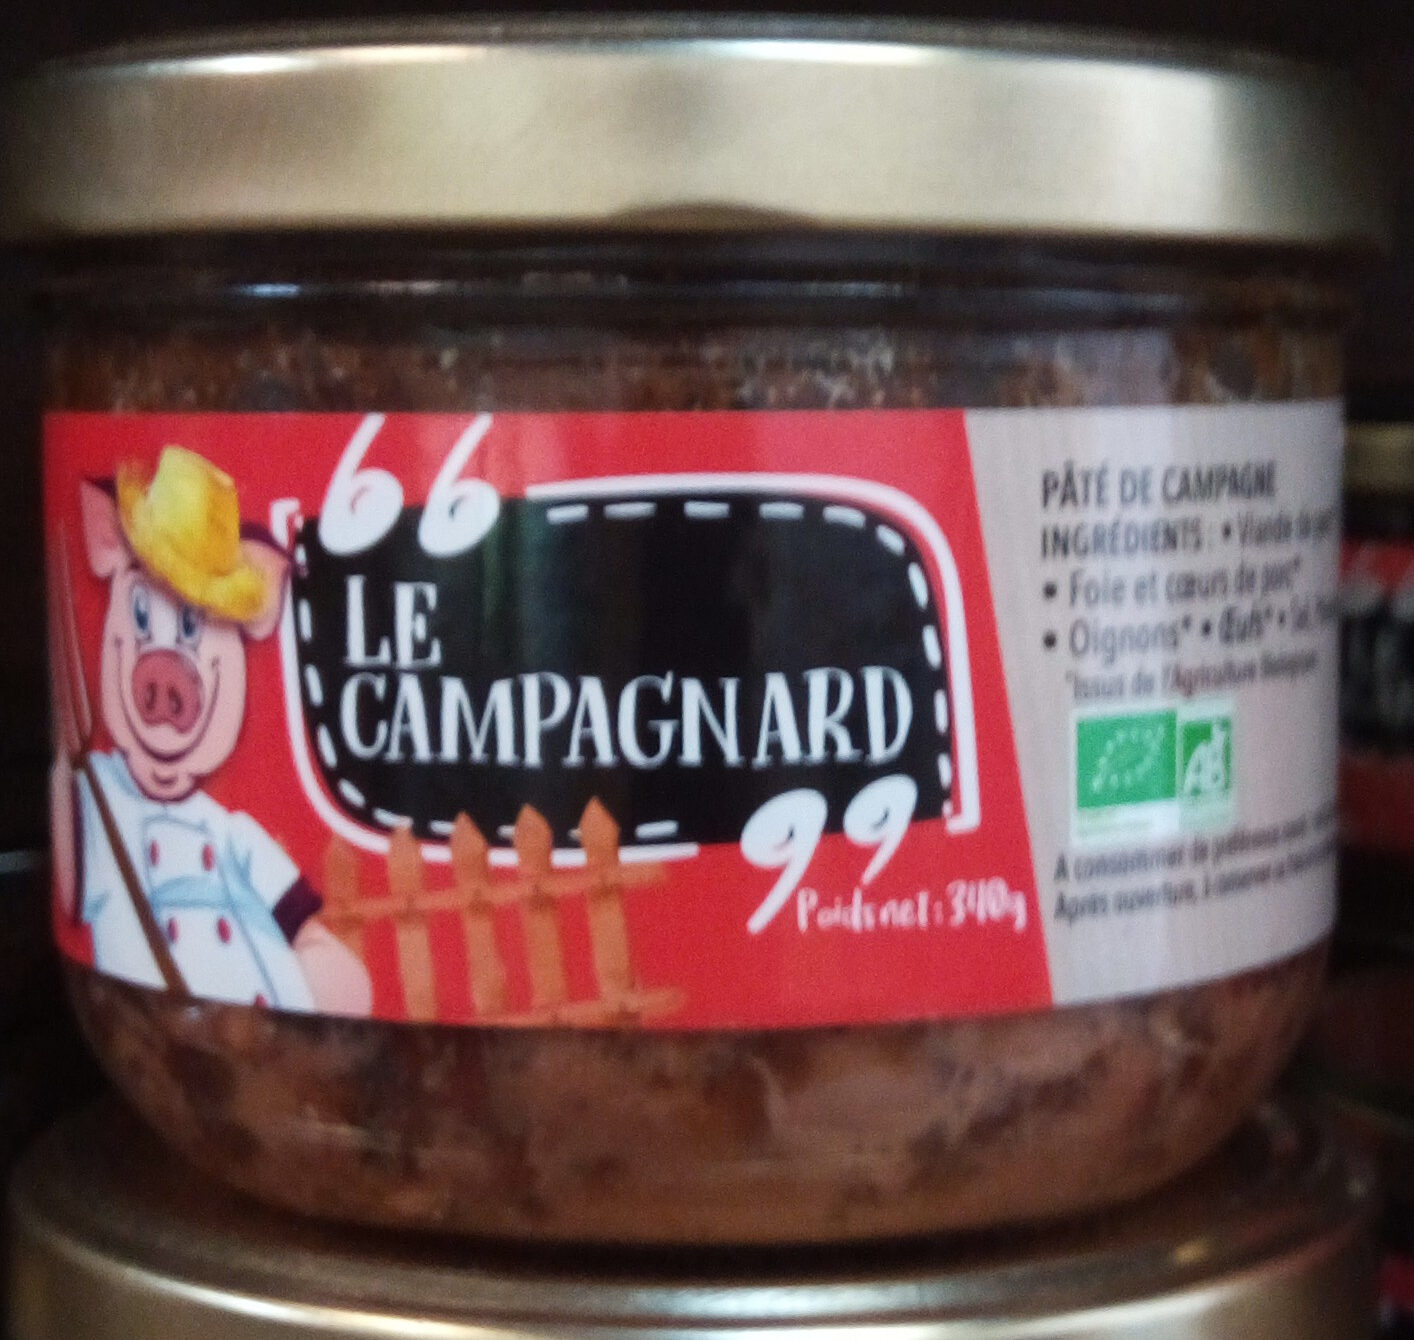 Le Campagnard - Product - fr